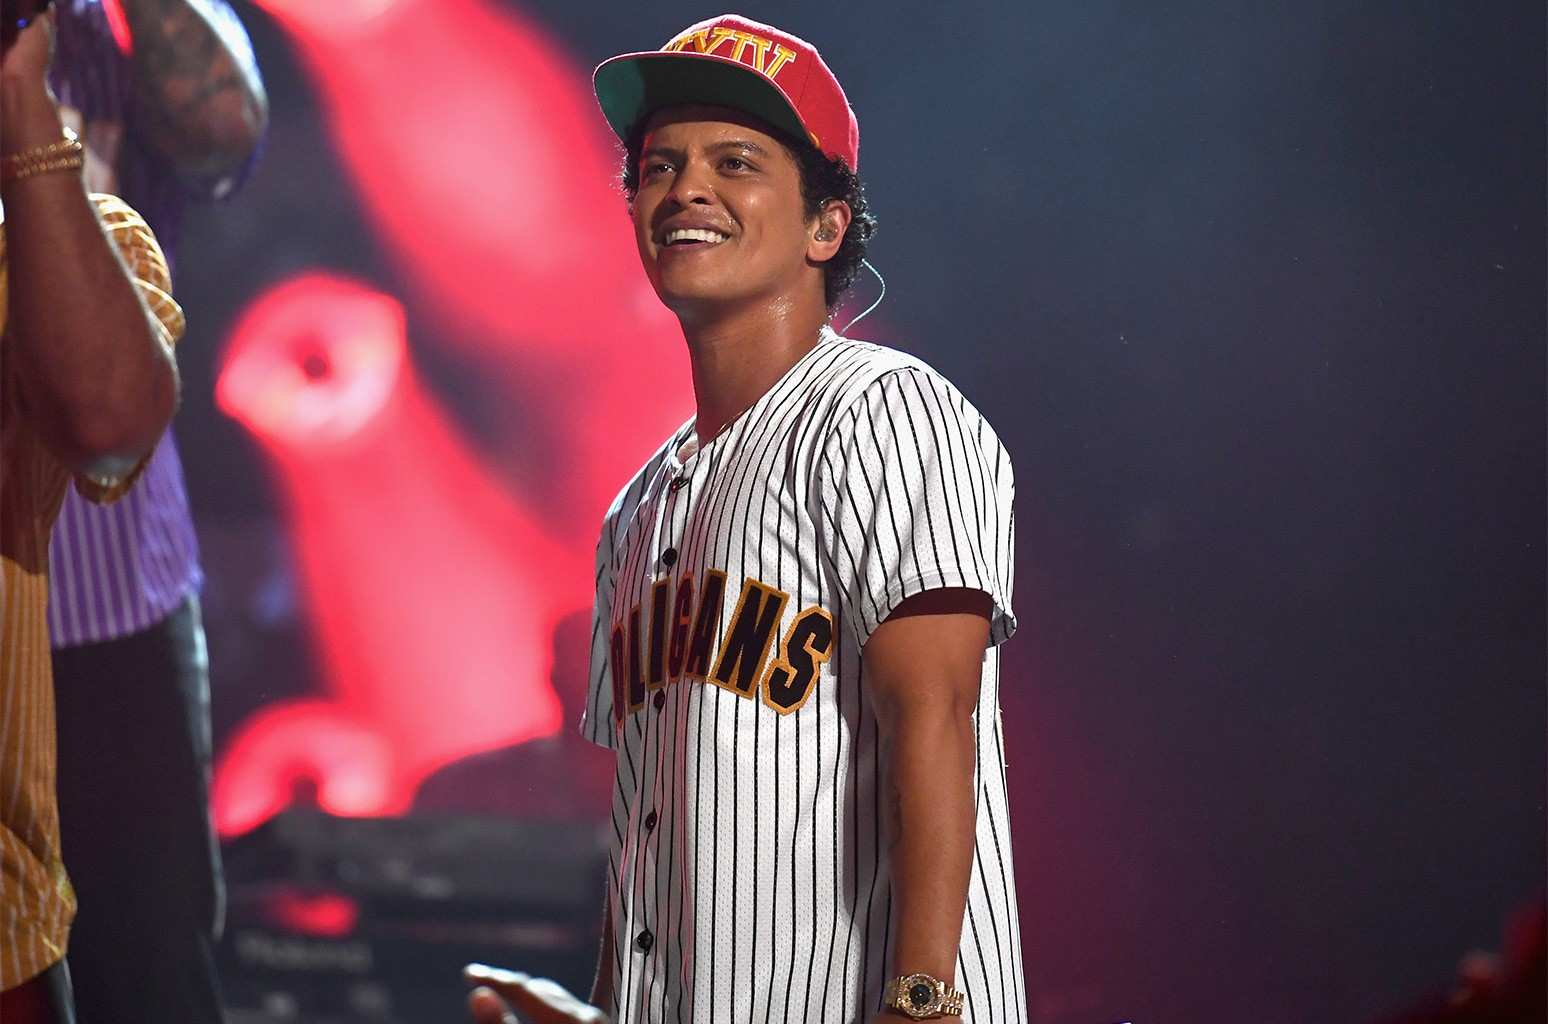 Bruno Mars performs onstage at 2017 BET Awards at Microsoft Theater on June 25, 2017 in Los Angeles.